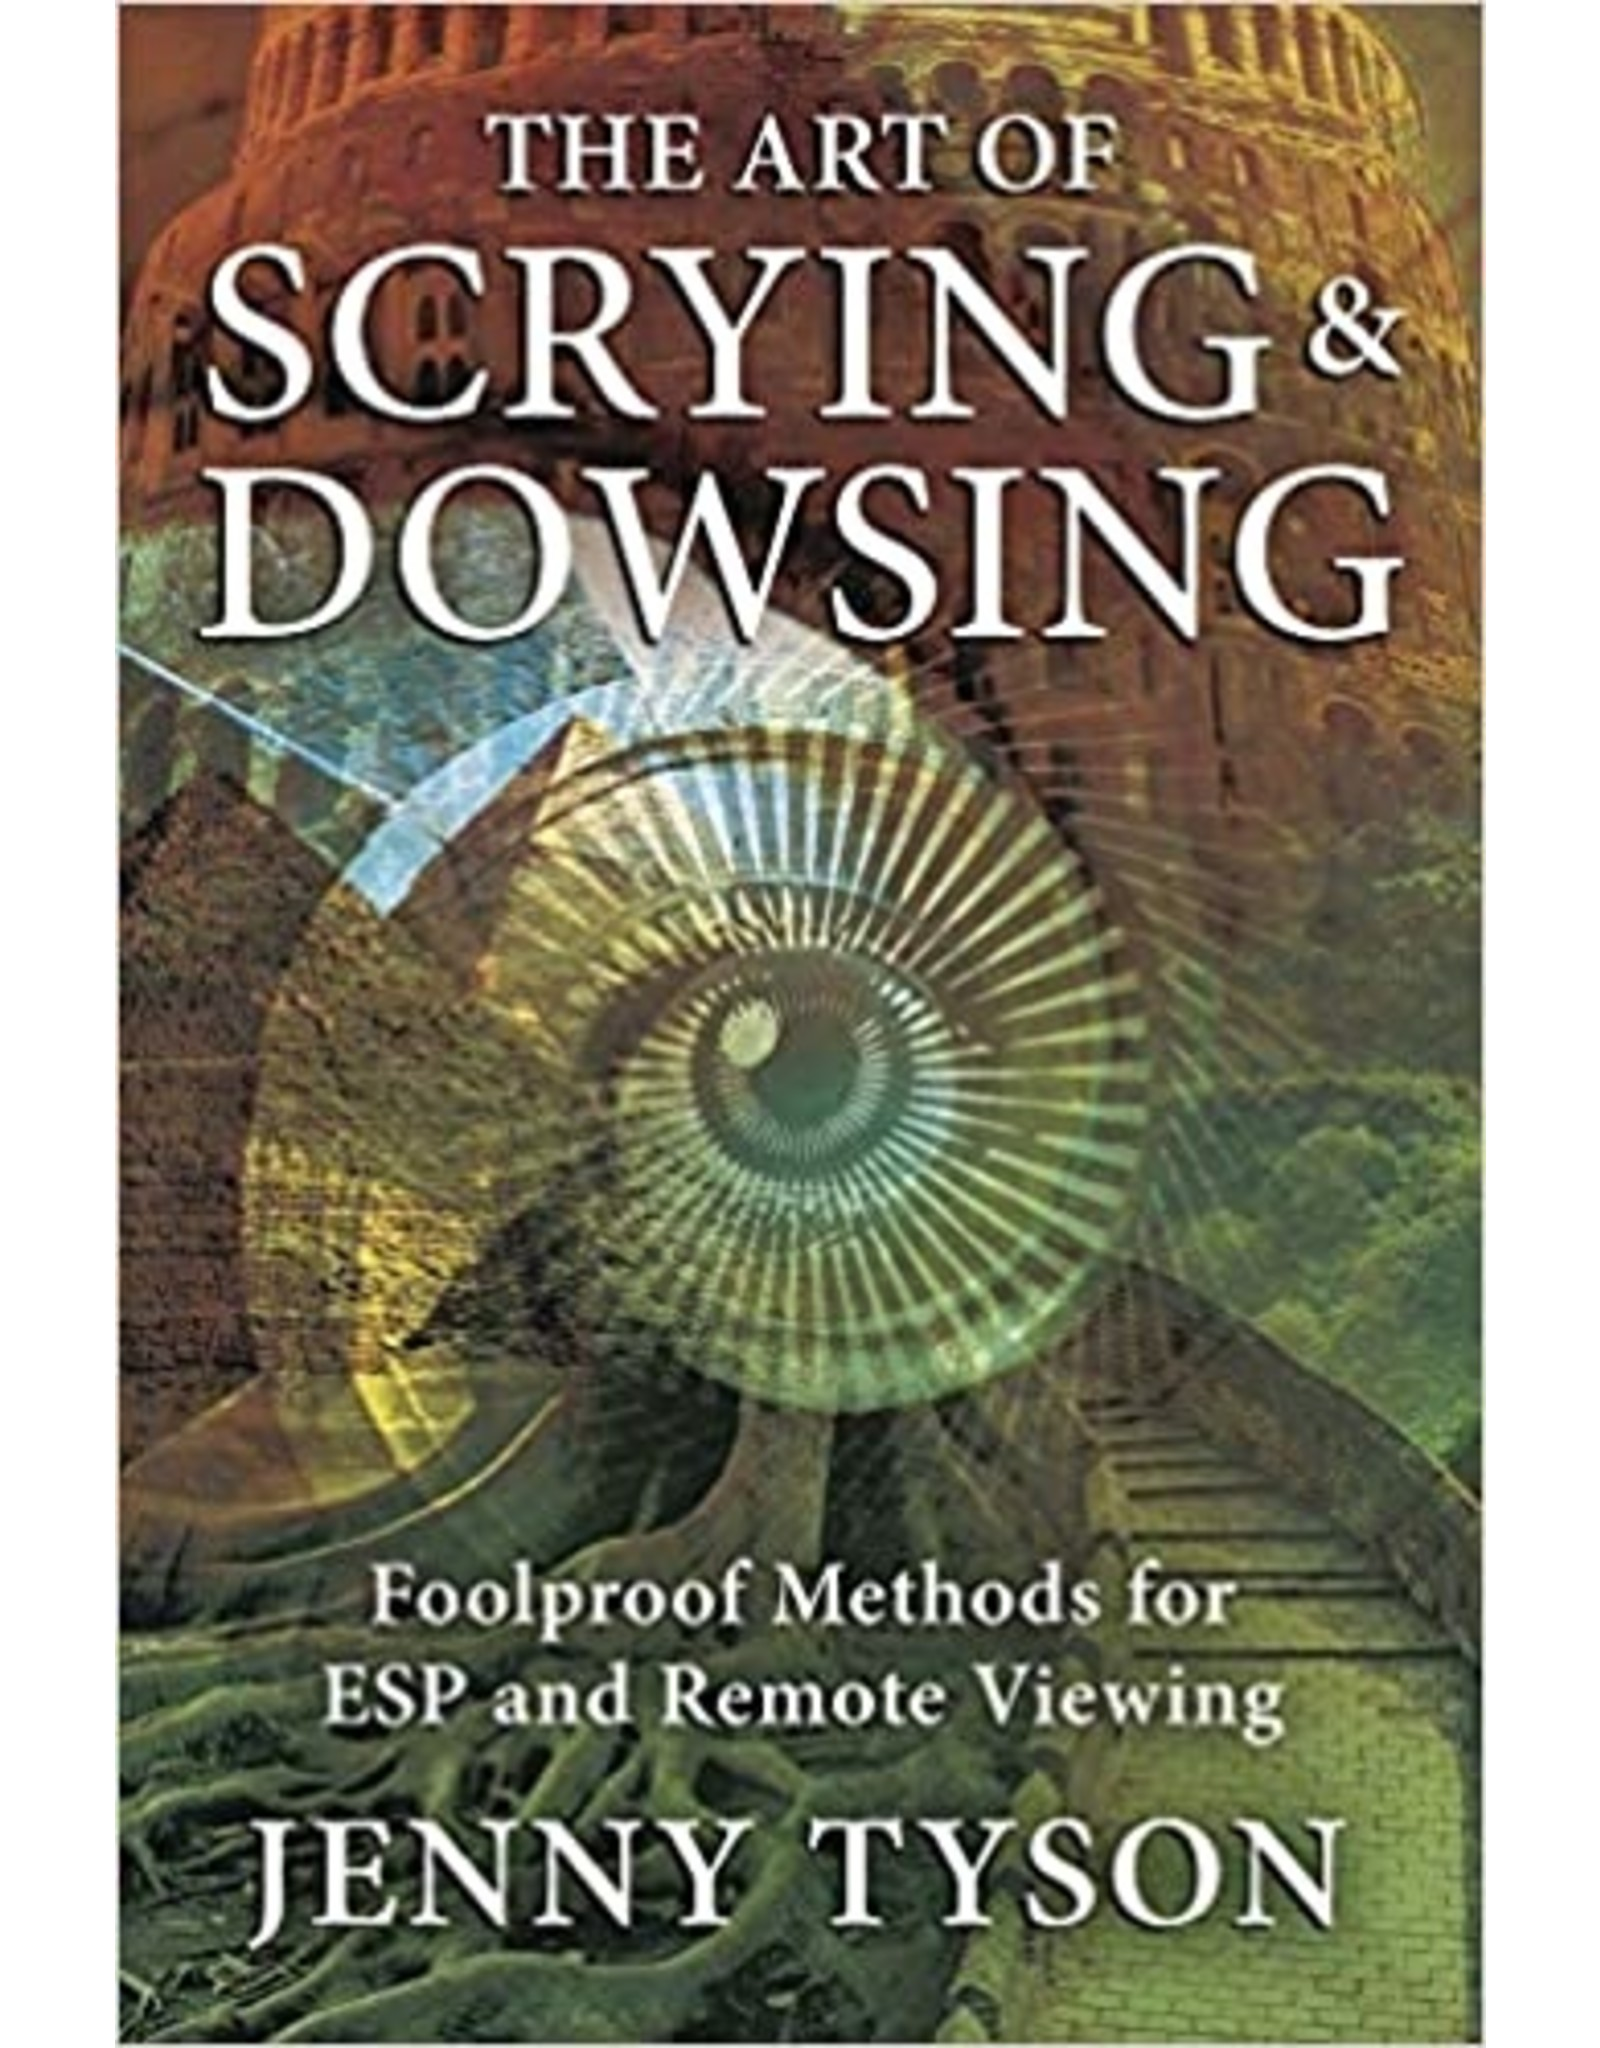 The Art of Scrying & Dowsing